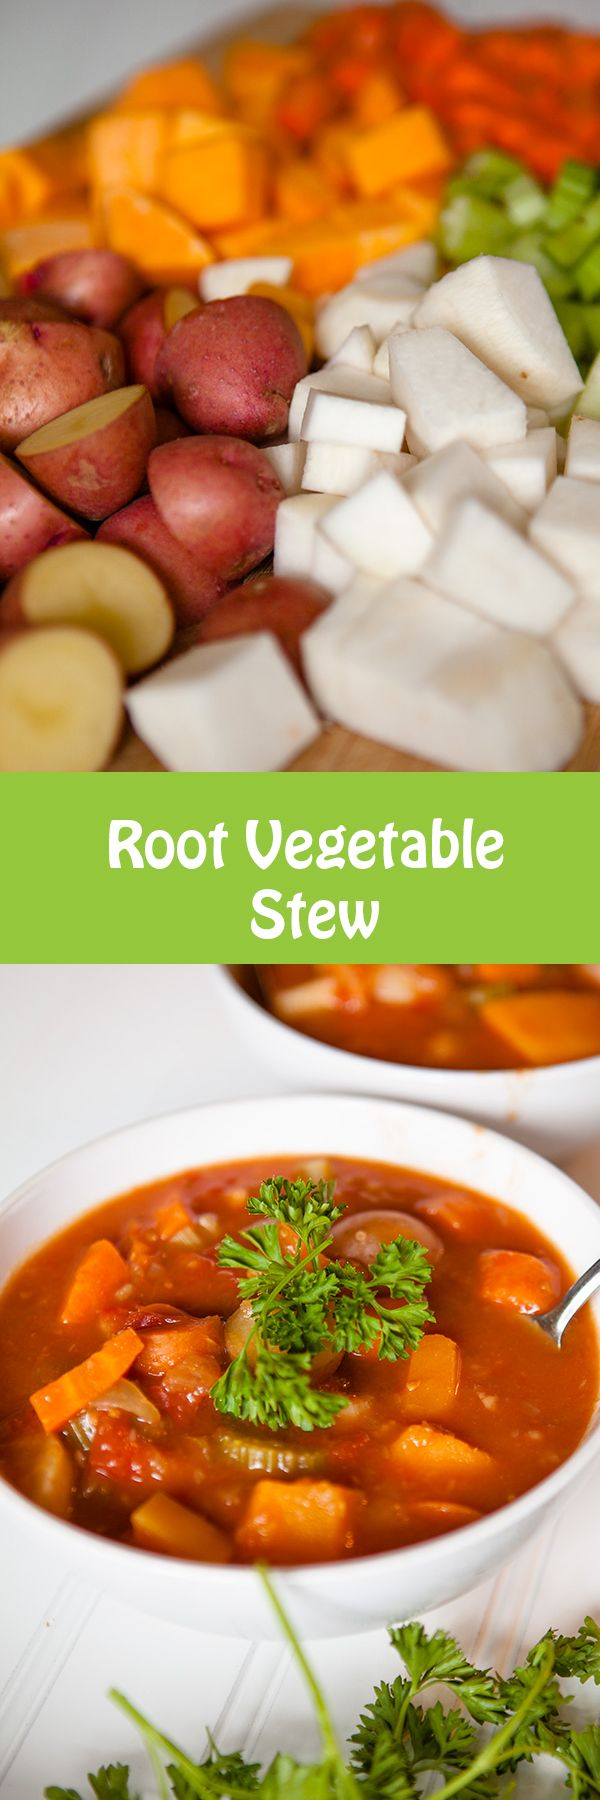 Vegan Root Vegetable Stew                                                       …